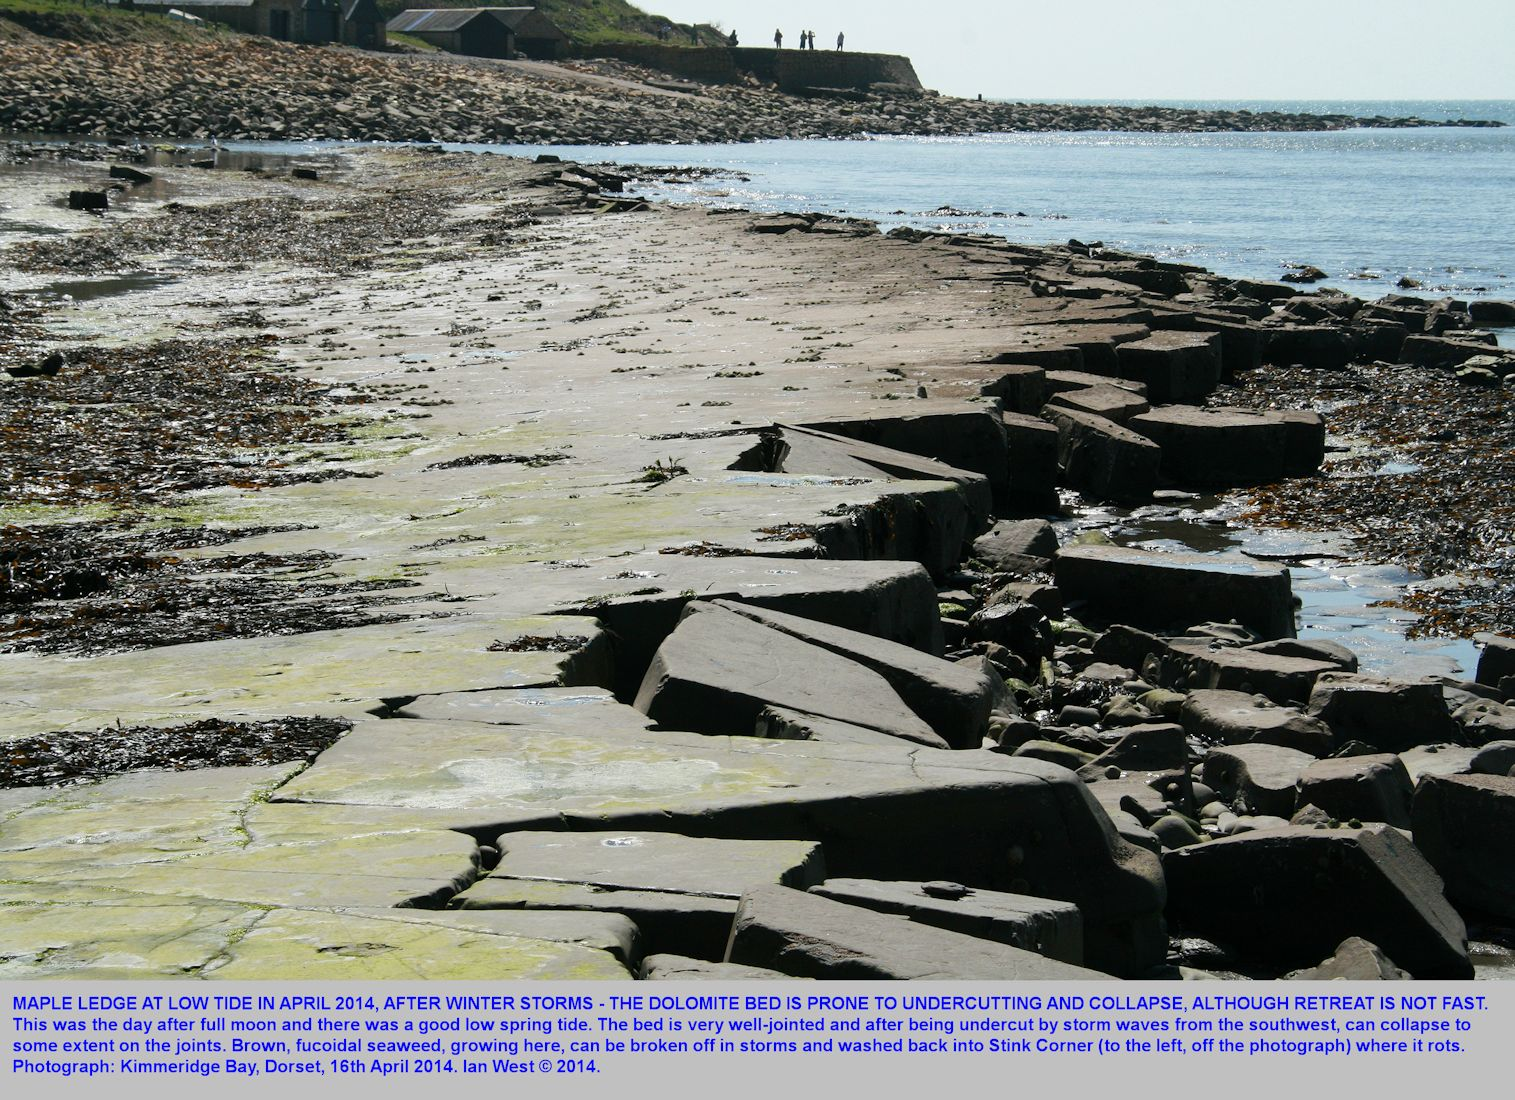 Maple Ledge, with some fracture and fall of blocks after winter storms, Kimmeridge Bay, Dorset, 16th April 2014